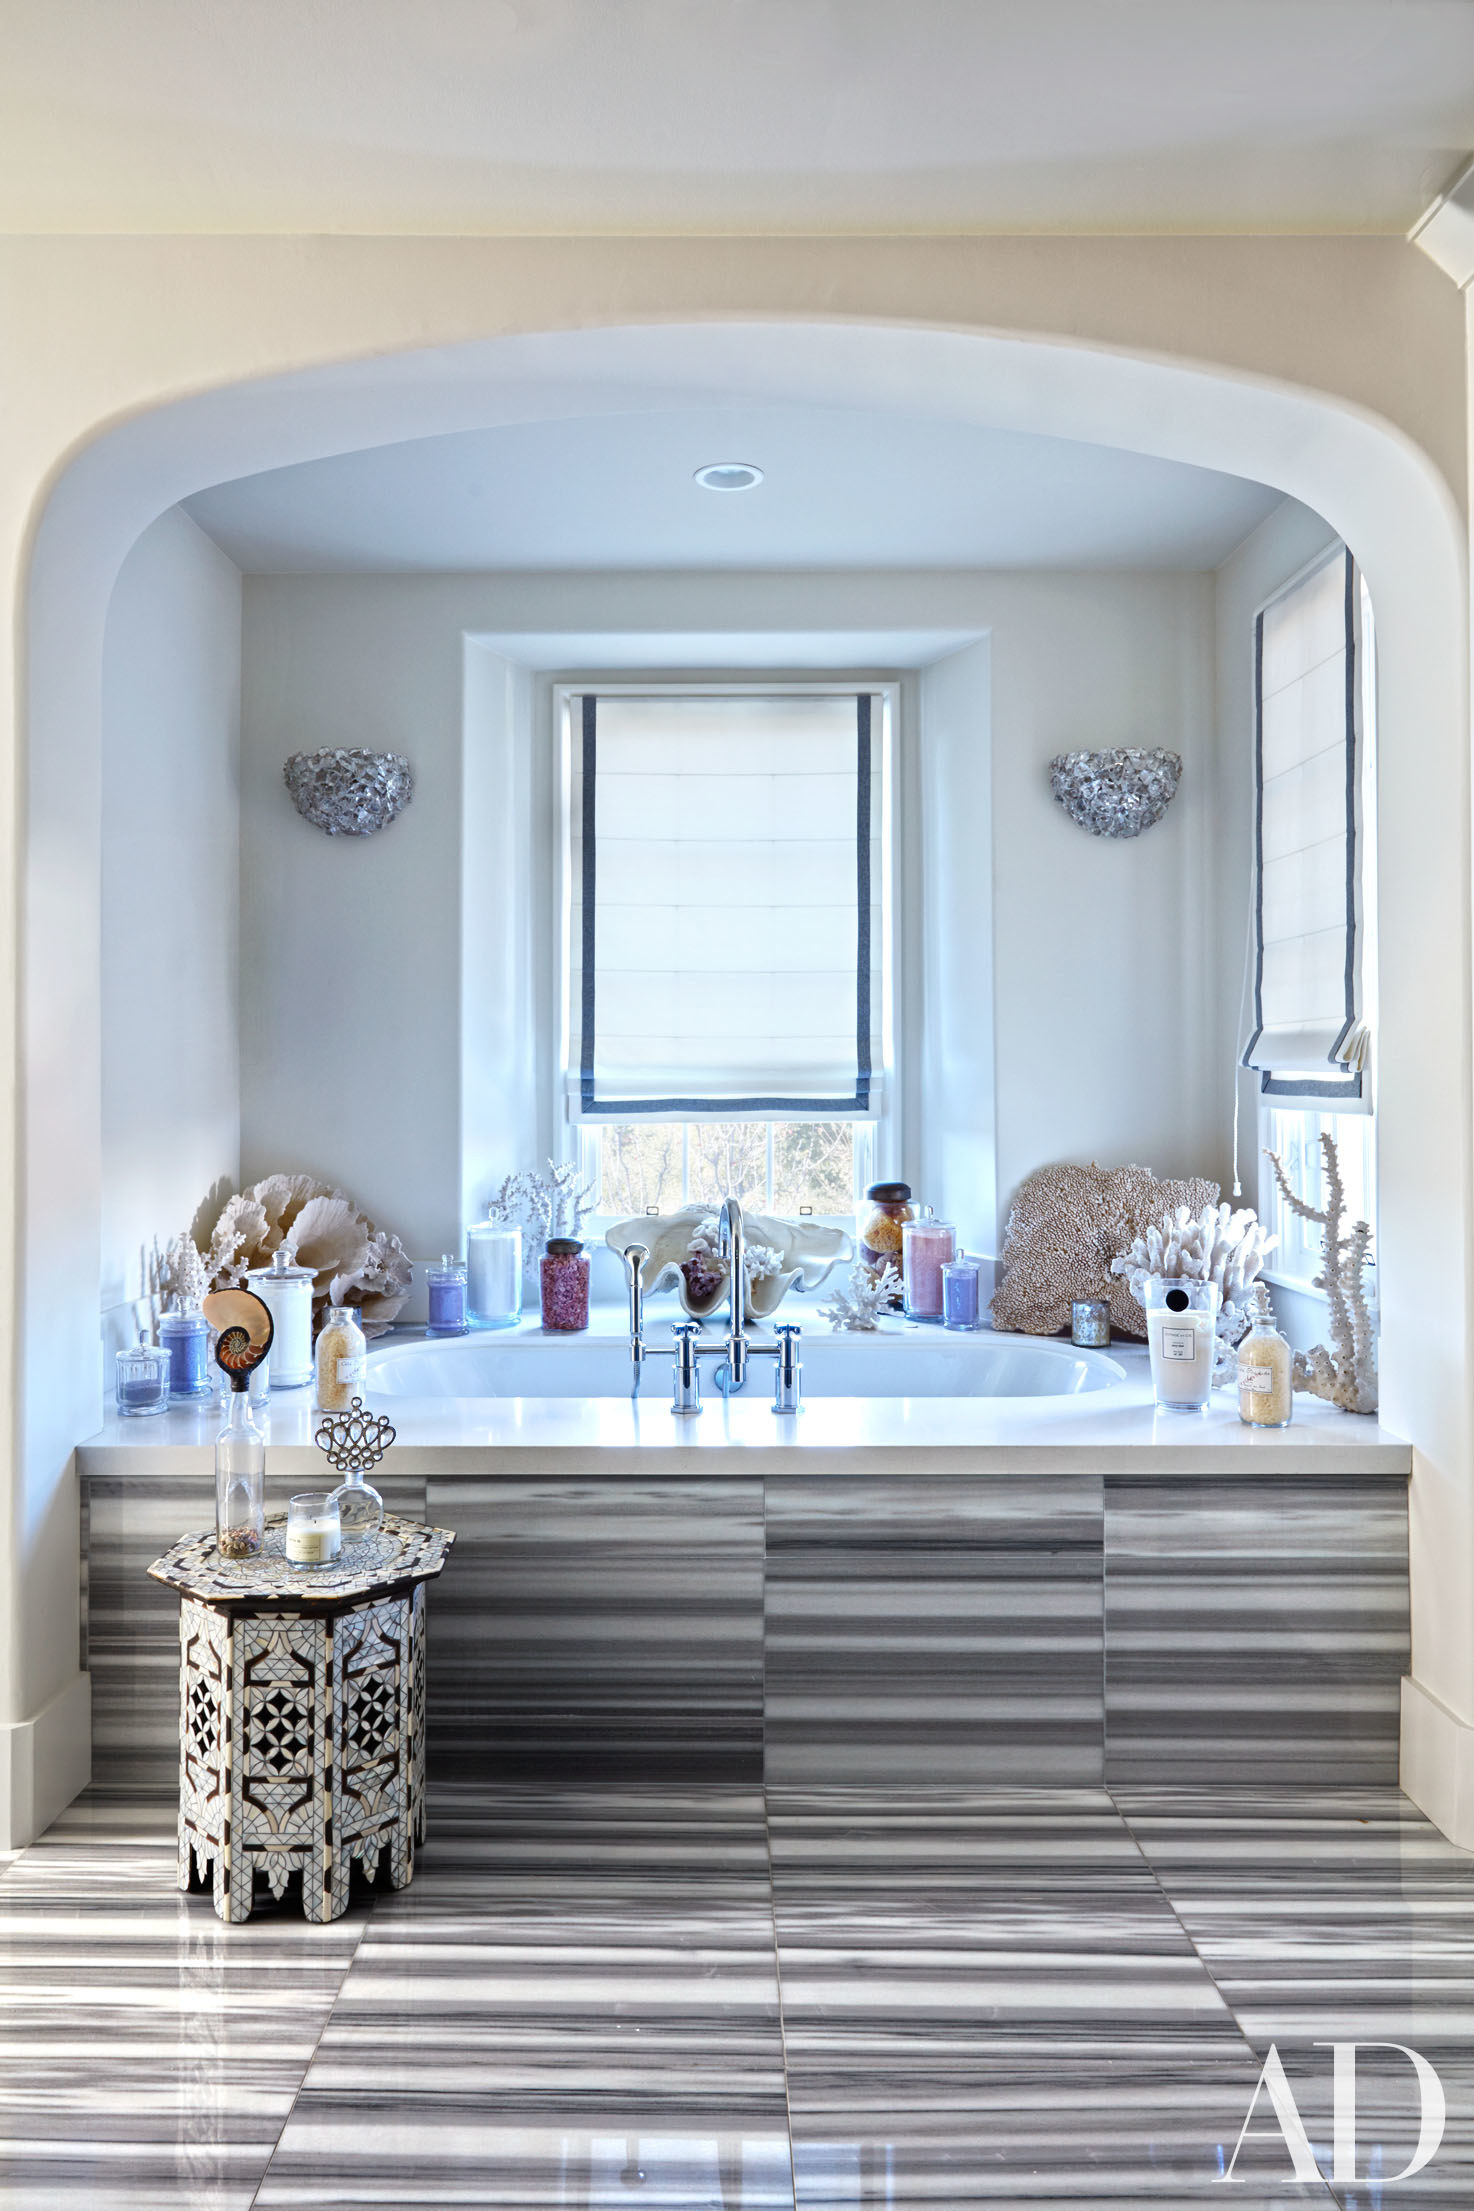 khloe kardashian house interior. khloe Kardashian s reading nook features an arched doorway and is filled  with moroccan notes a style bench triangular star shaped Inside kardashian House Glamorous Moroccan Notes SO